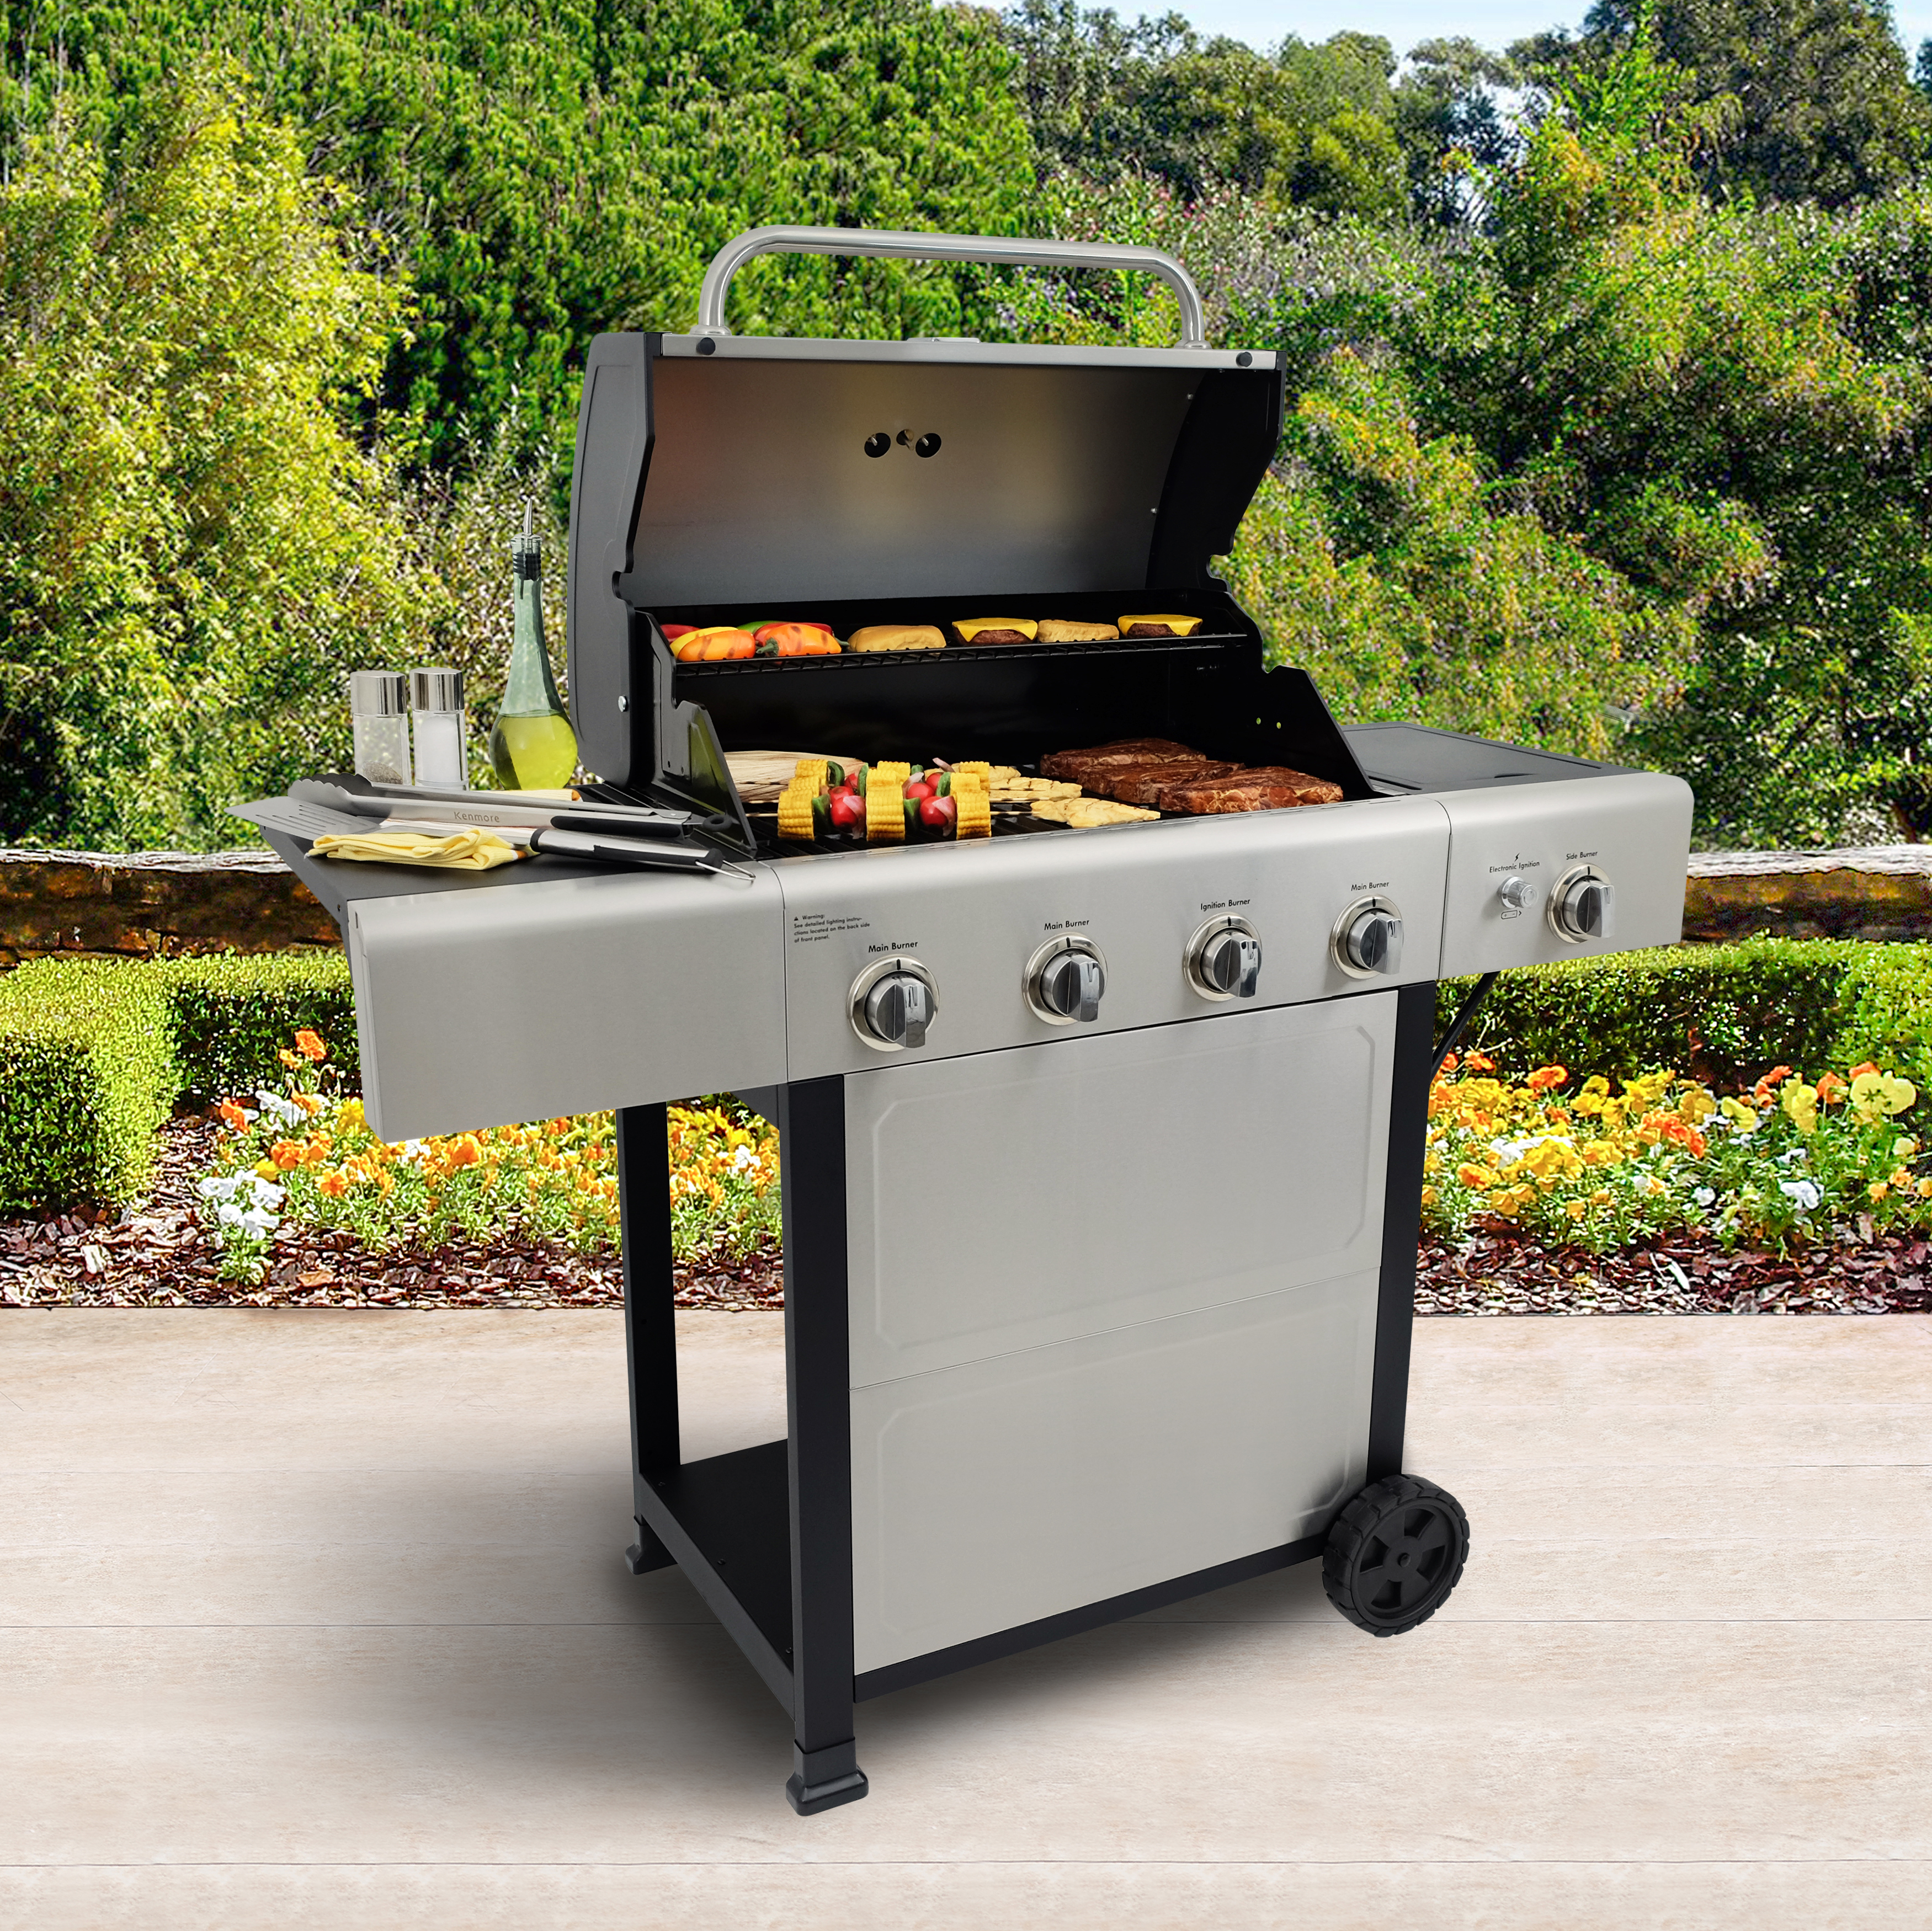 Kenmore 4 Burner Open Cart Grill with side Burner and Stainless Steel Lid and Front Panel